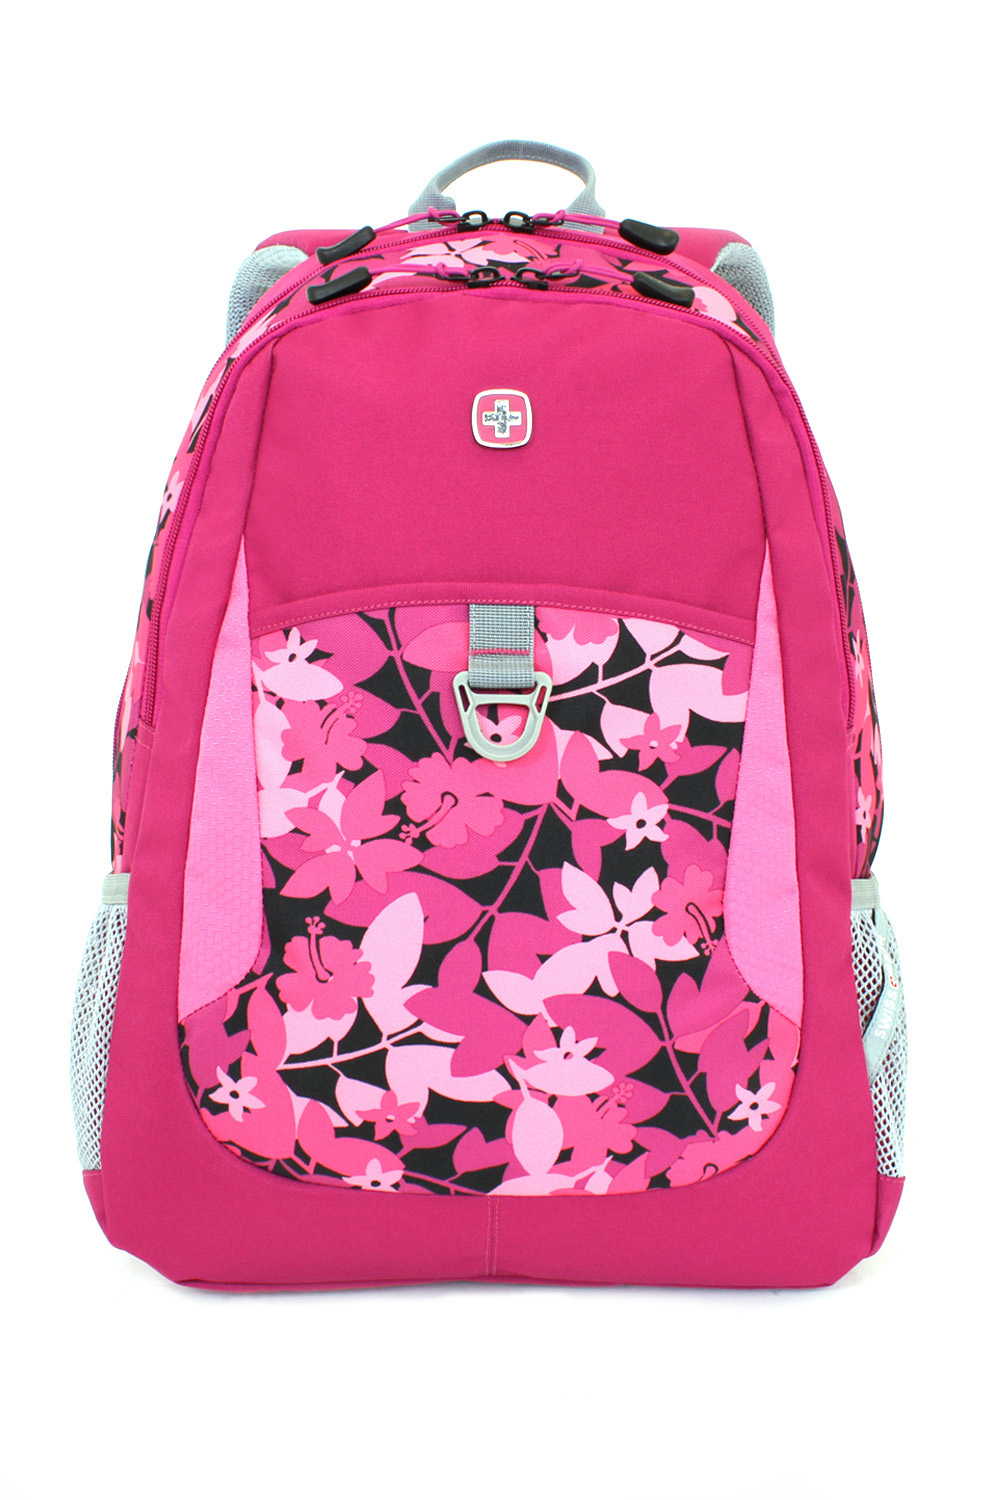 SWISSGEAR 6608 Backpack - Pink